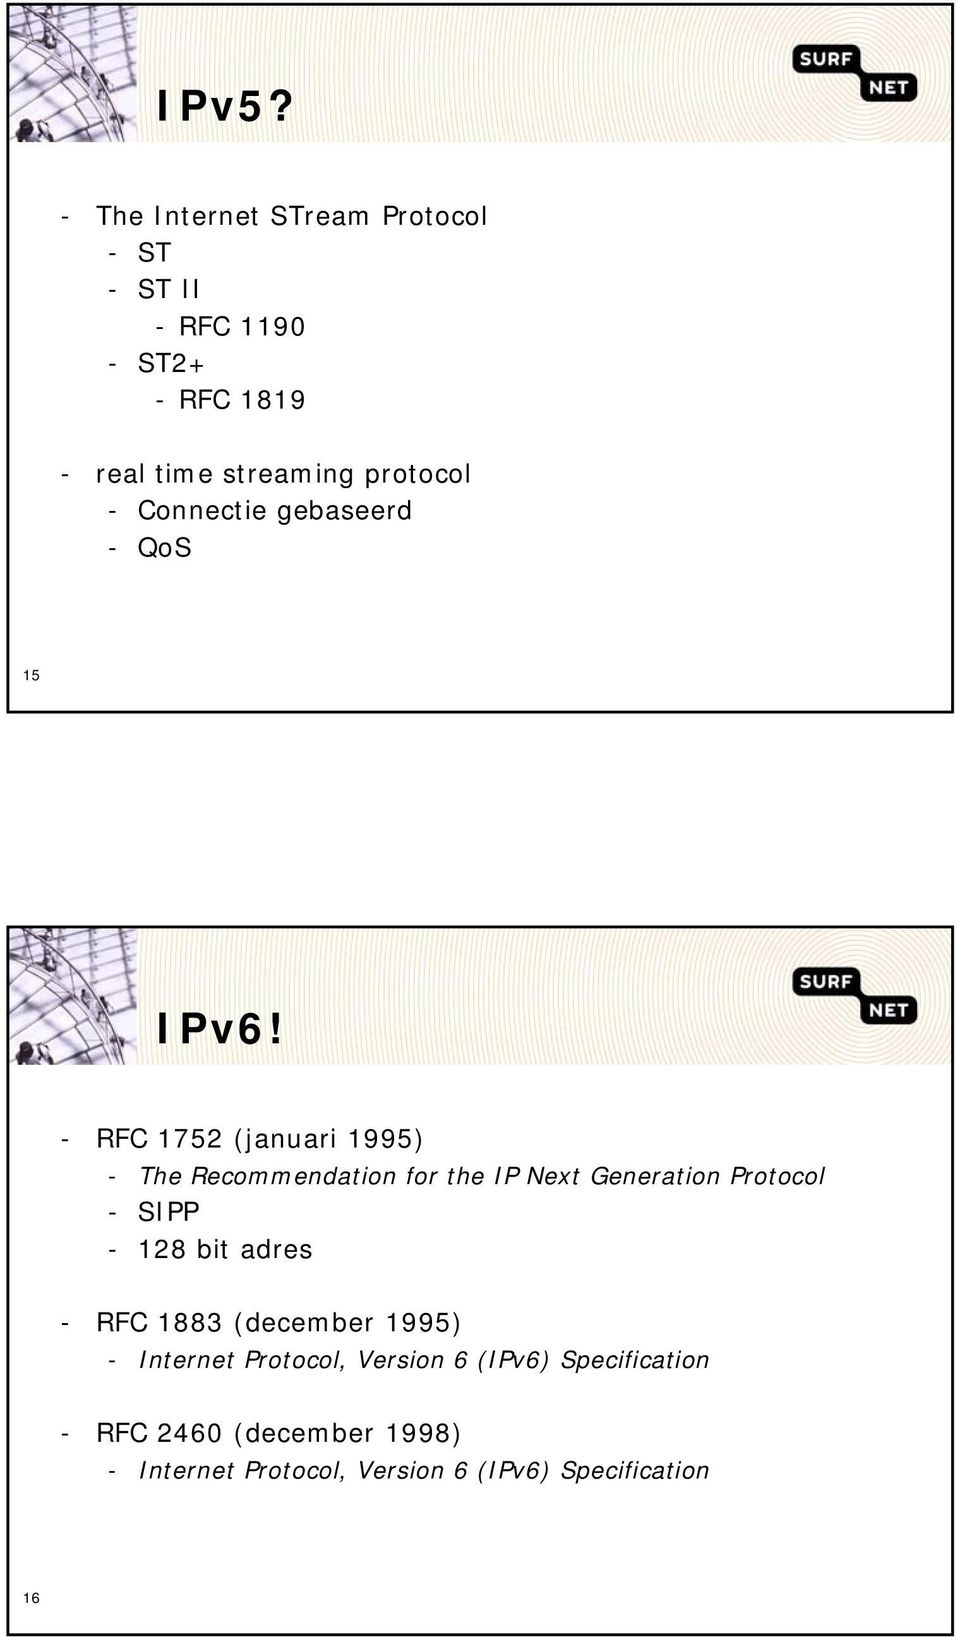 - RFC 1752 (januari 1995) - The Recommendation for the IP Next Generation Protocol - SIPP - 128 bit